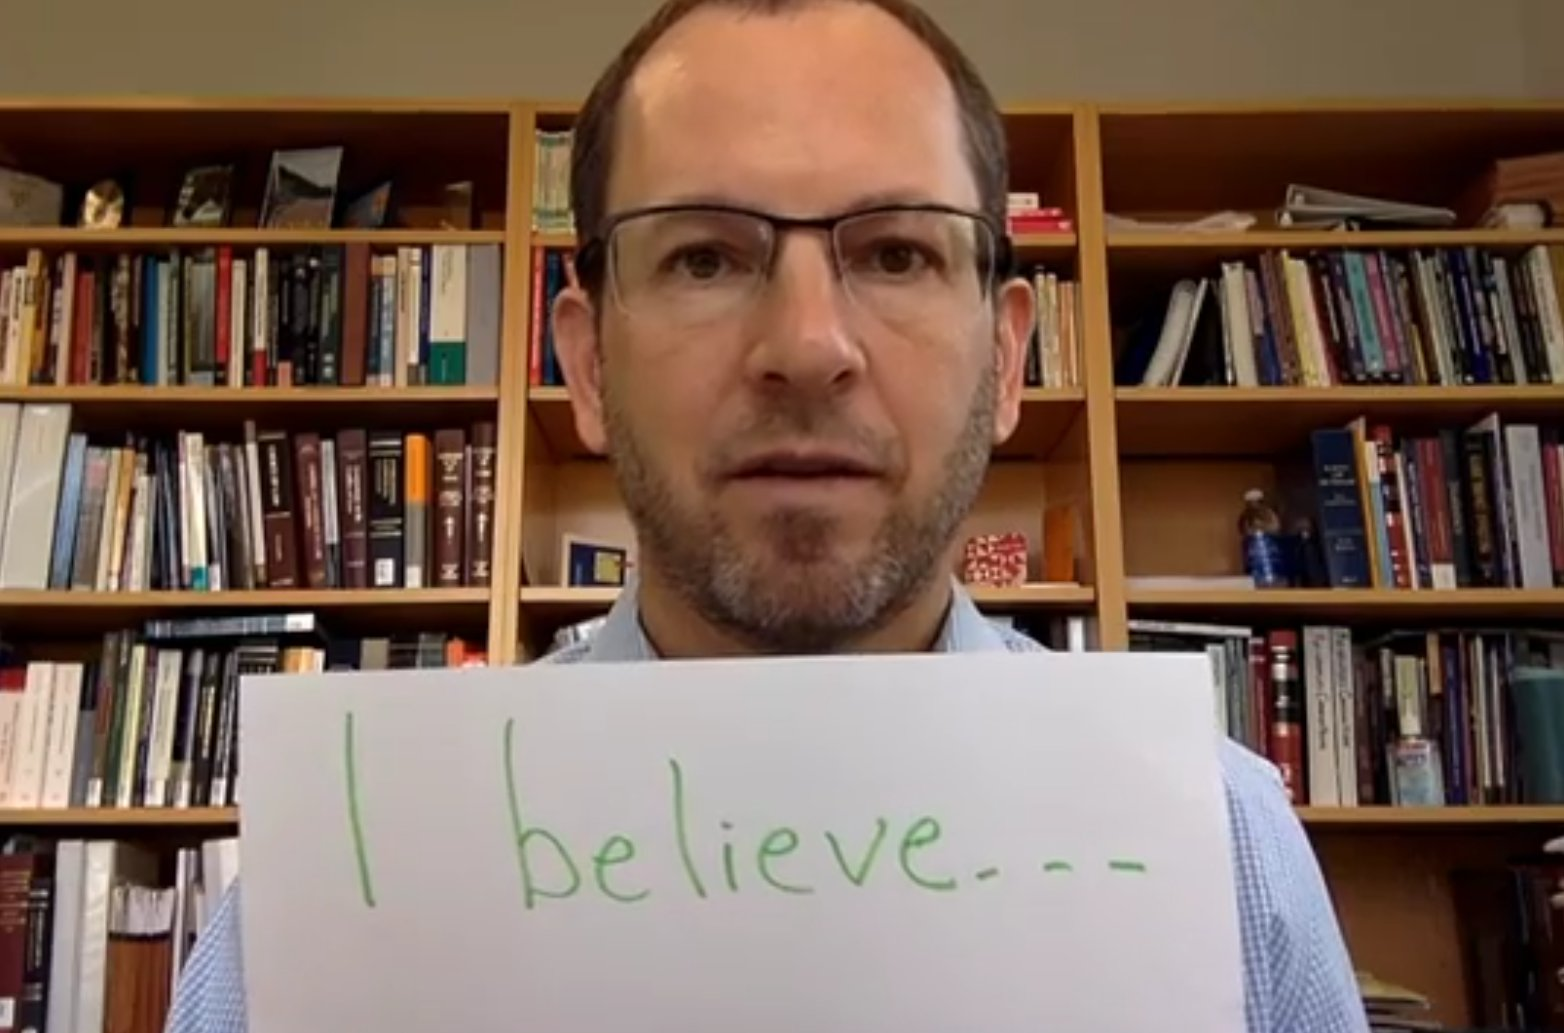 Prof. Whytock shares what he believes in as part of @UCIChcLatino's #IBelieve campaign: https://t.co/9QjV5TrWpO https://t.co/LWwWWv3iUF